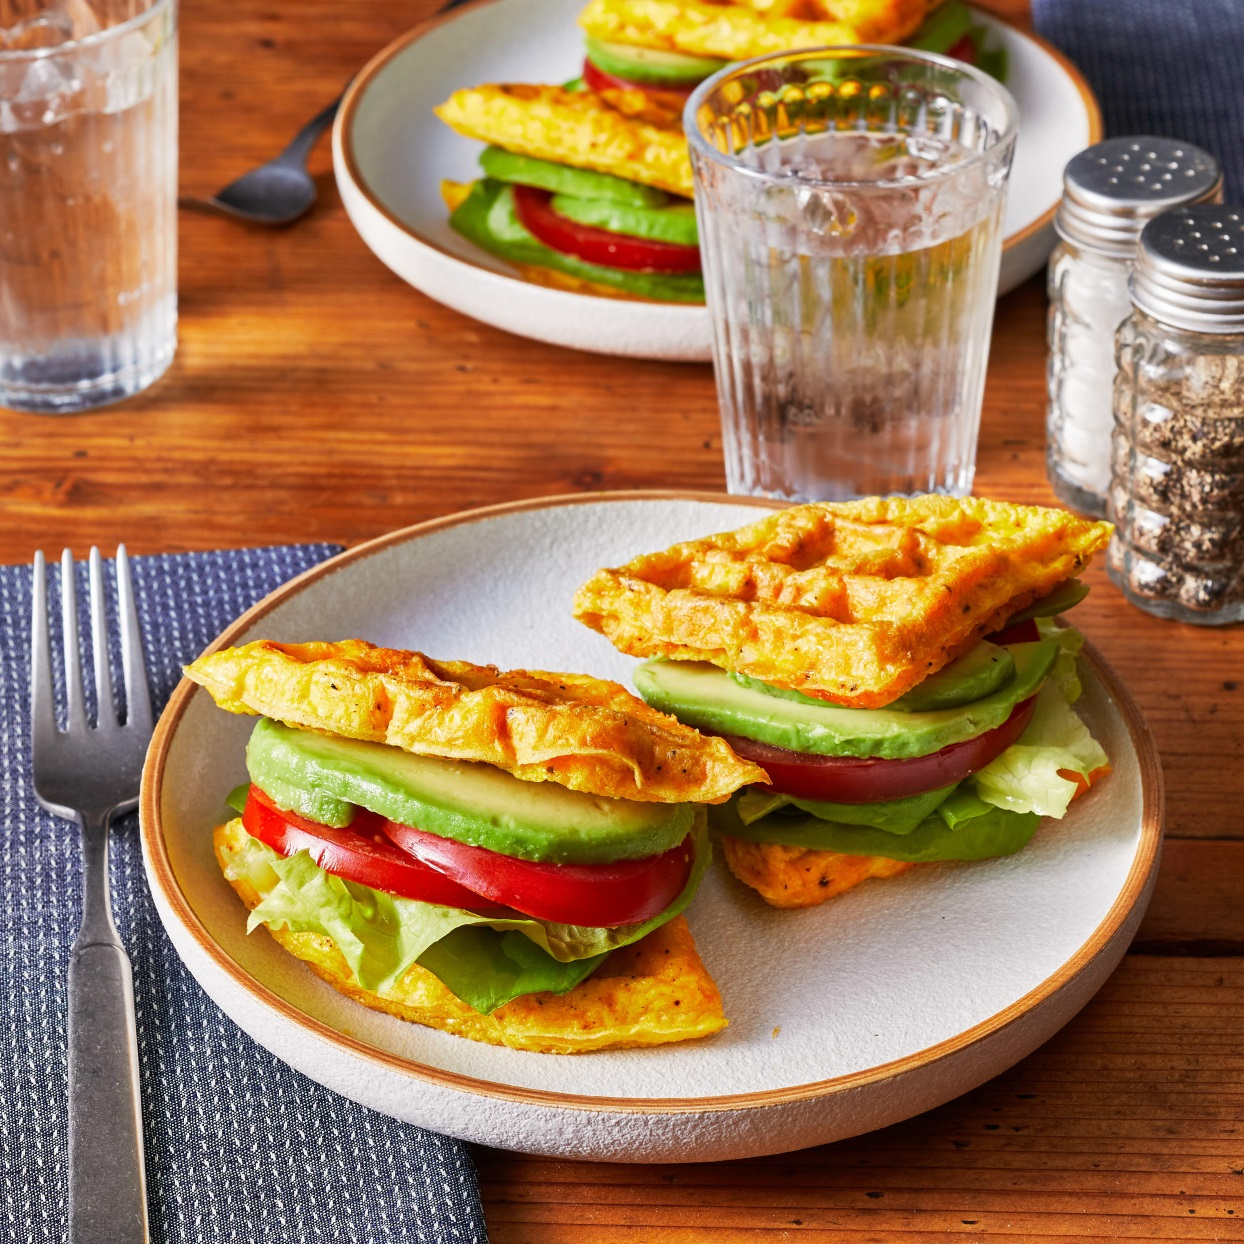 Cheesy Chaffle Sandwiches with Avocado & Bacon